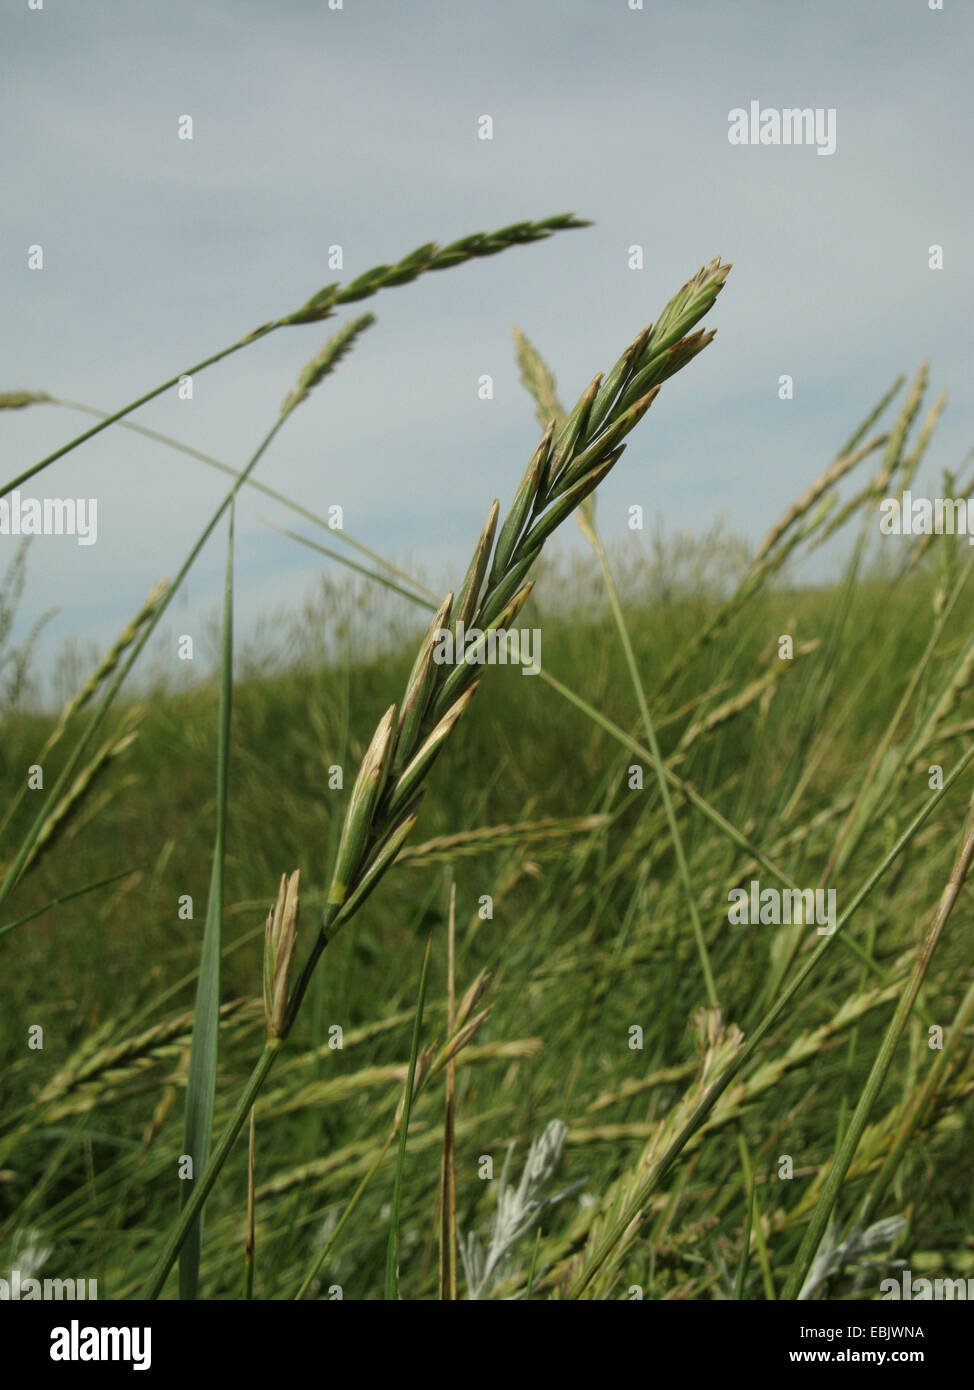 Sea couch grass (Elymus athericus, Agropyron pungens), spikes, Germany, Lower Saxony, Baltrum - Stock Image